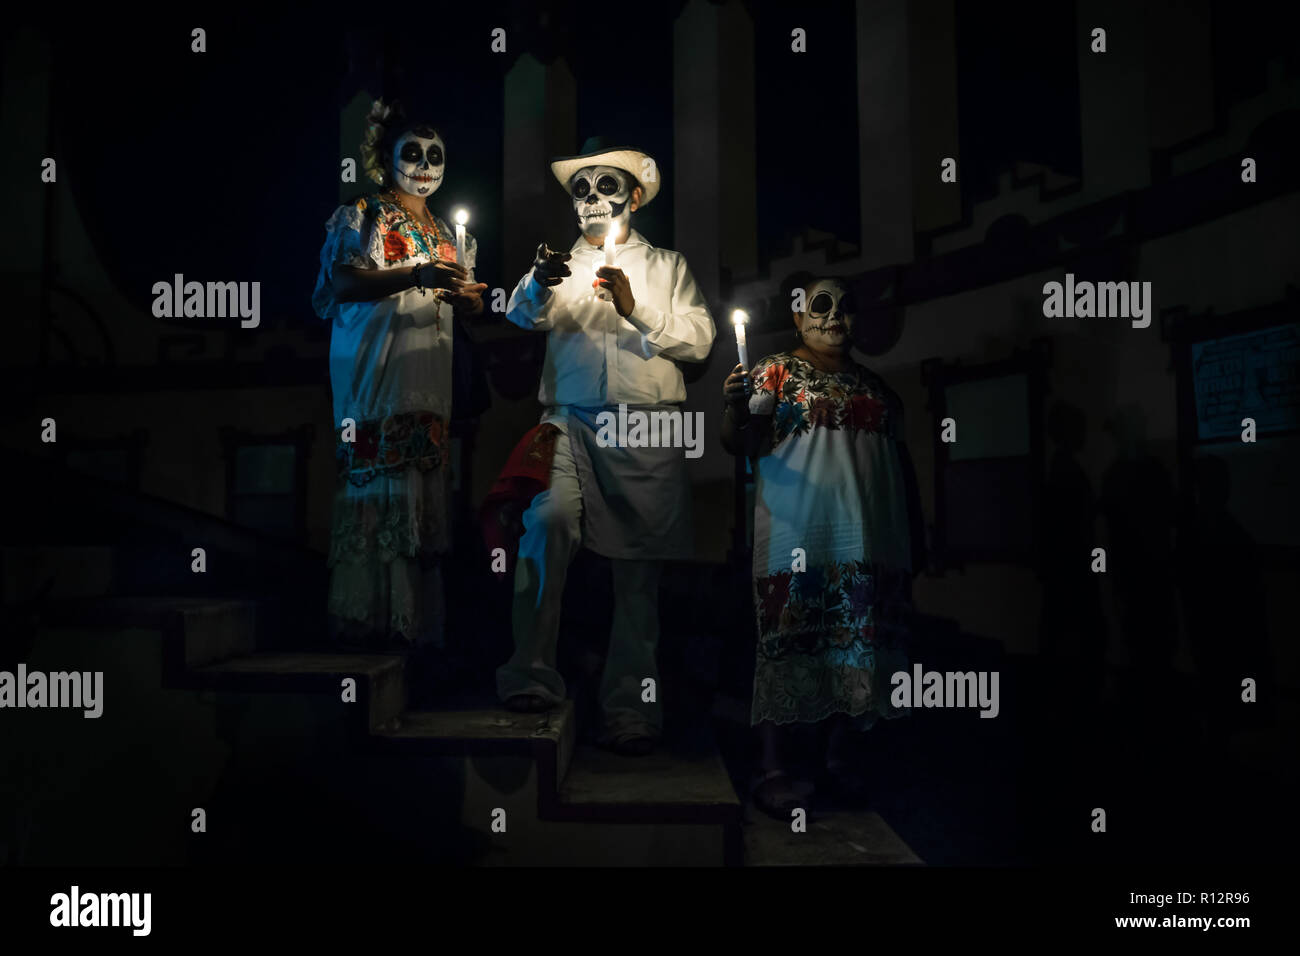 Merida, Cementerio General, Mexico - 31 October 2018: Customed man with candles and pointing and two woman dressed as Catrinas with skull make-up posi - Stock Image